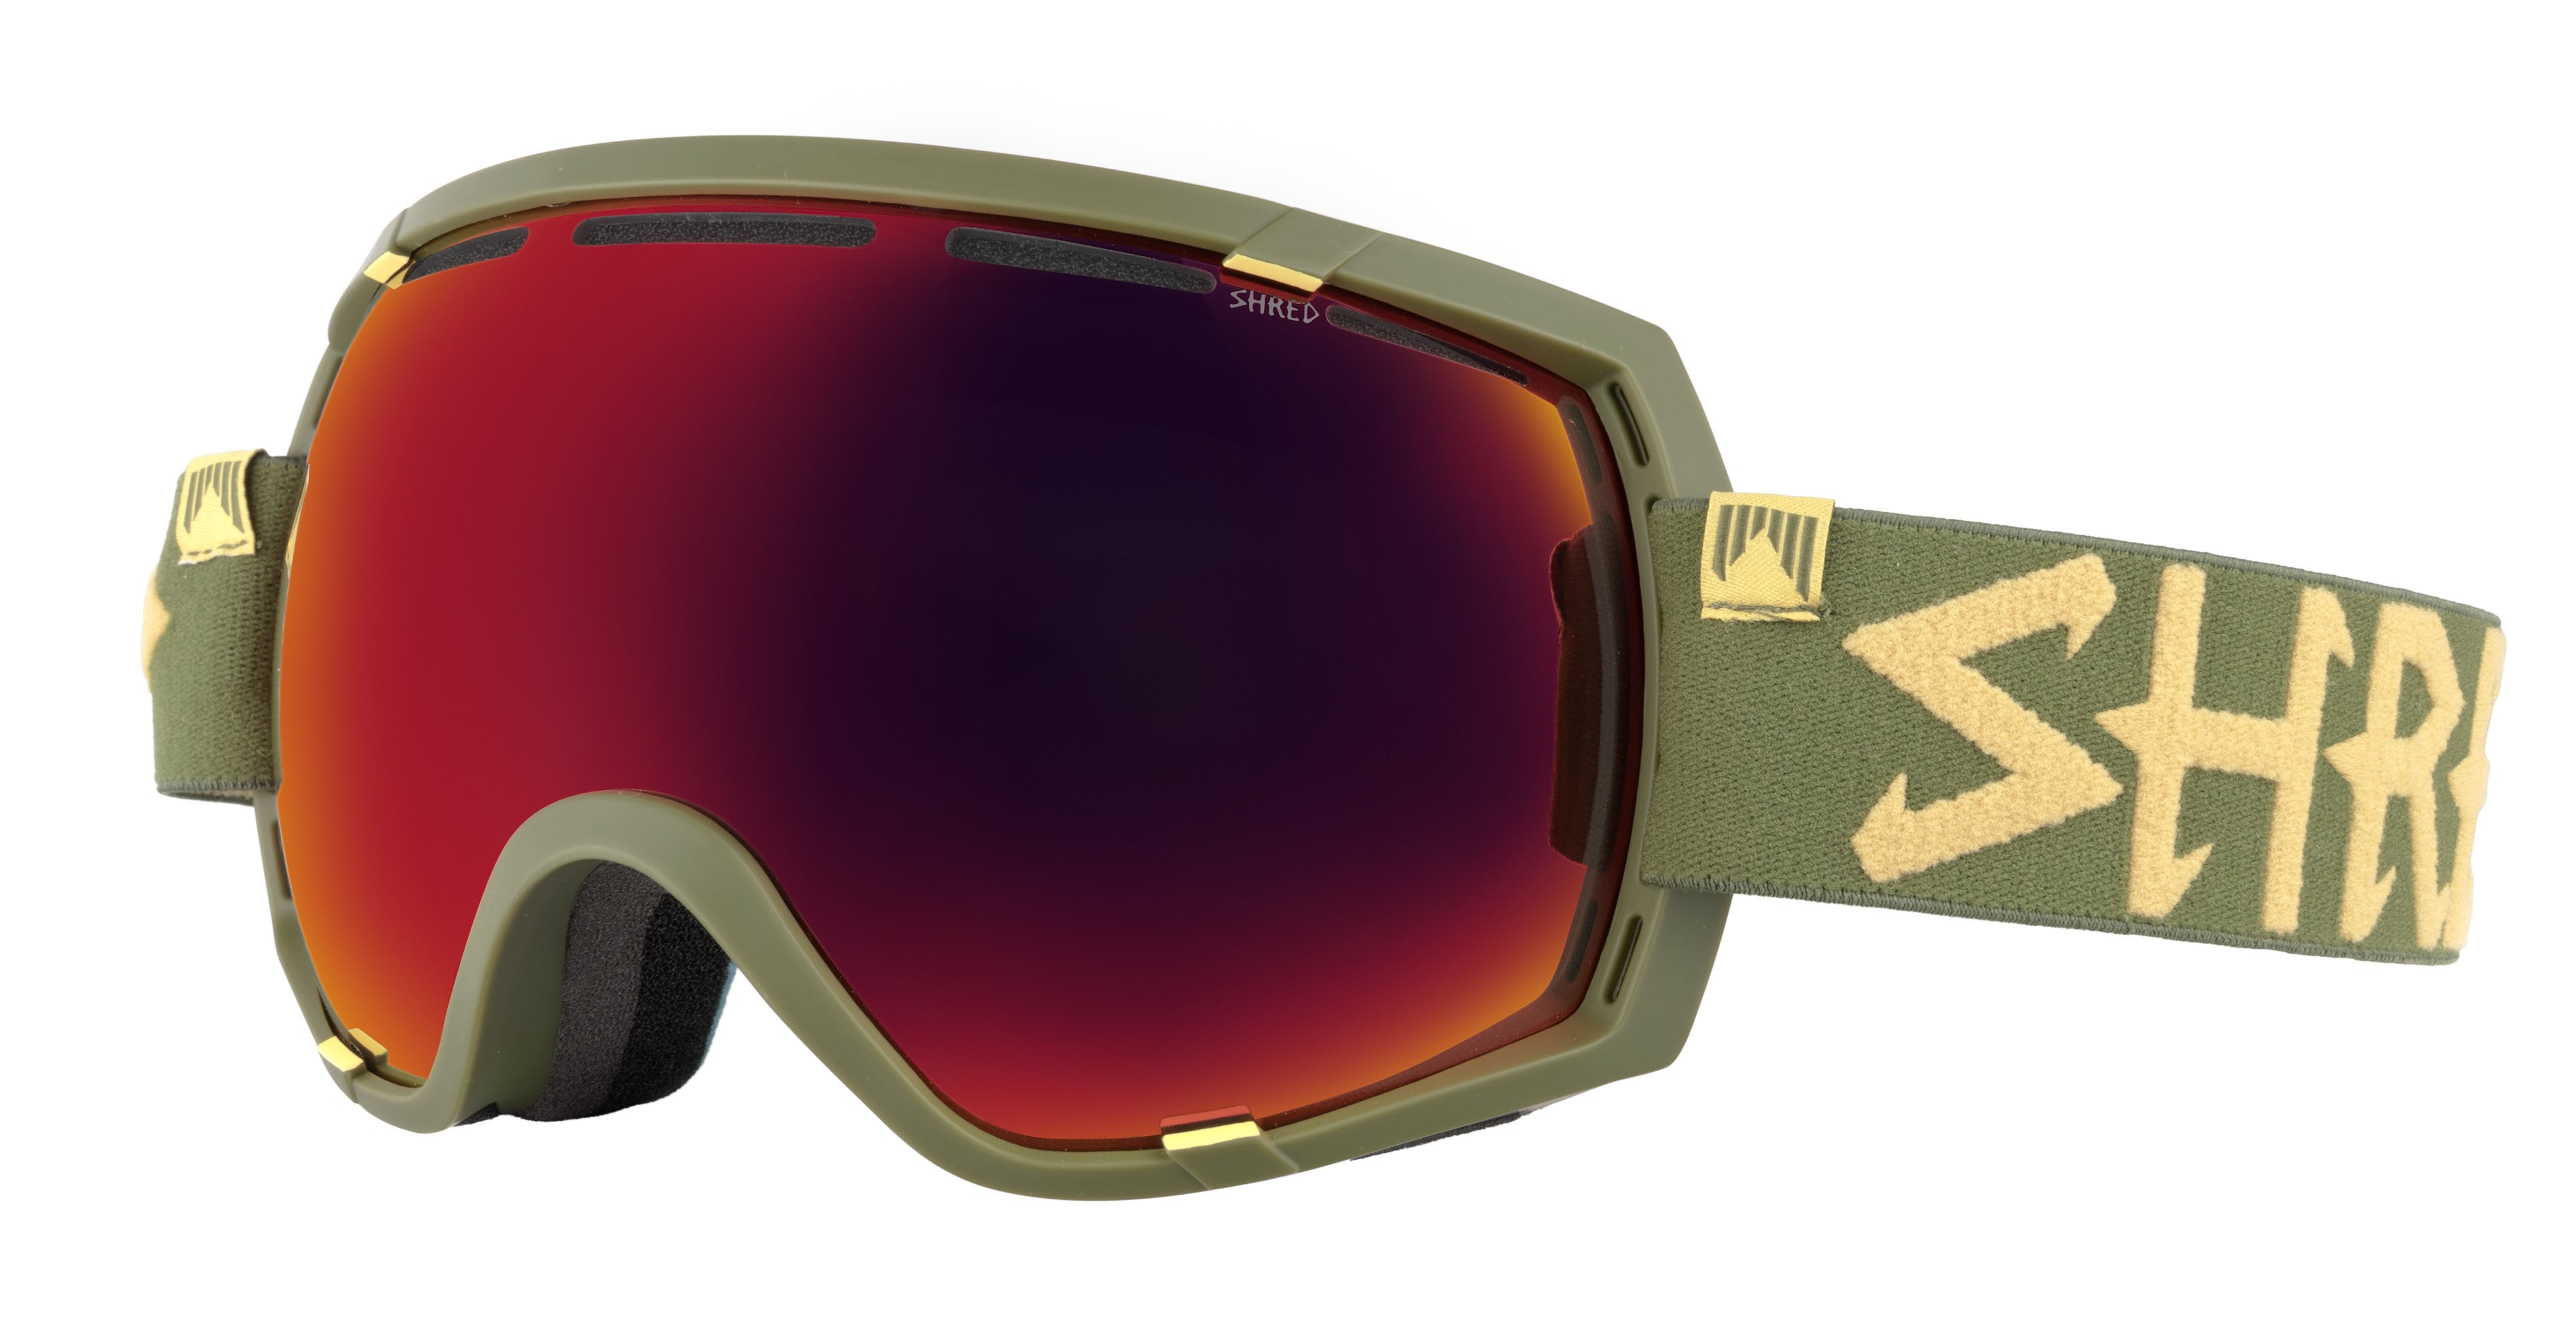 Shred Stupefy Trooper (CBL blast) goggles, 2018